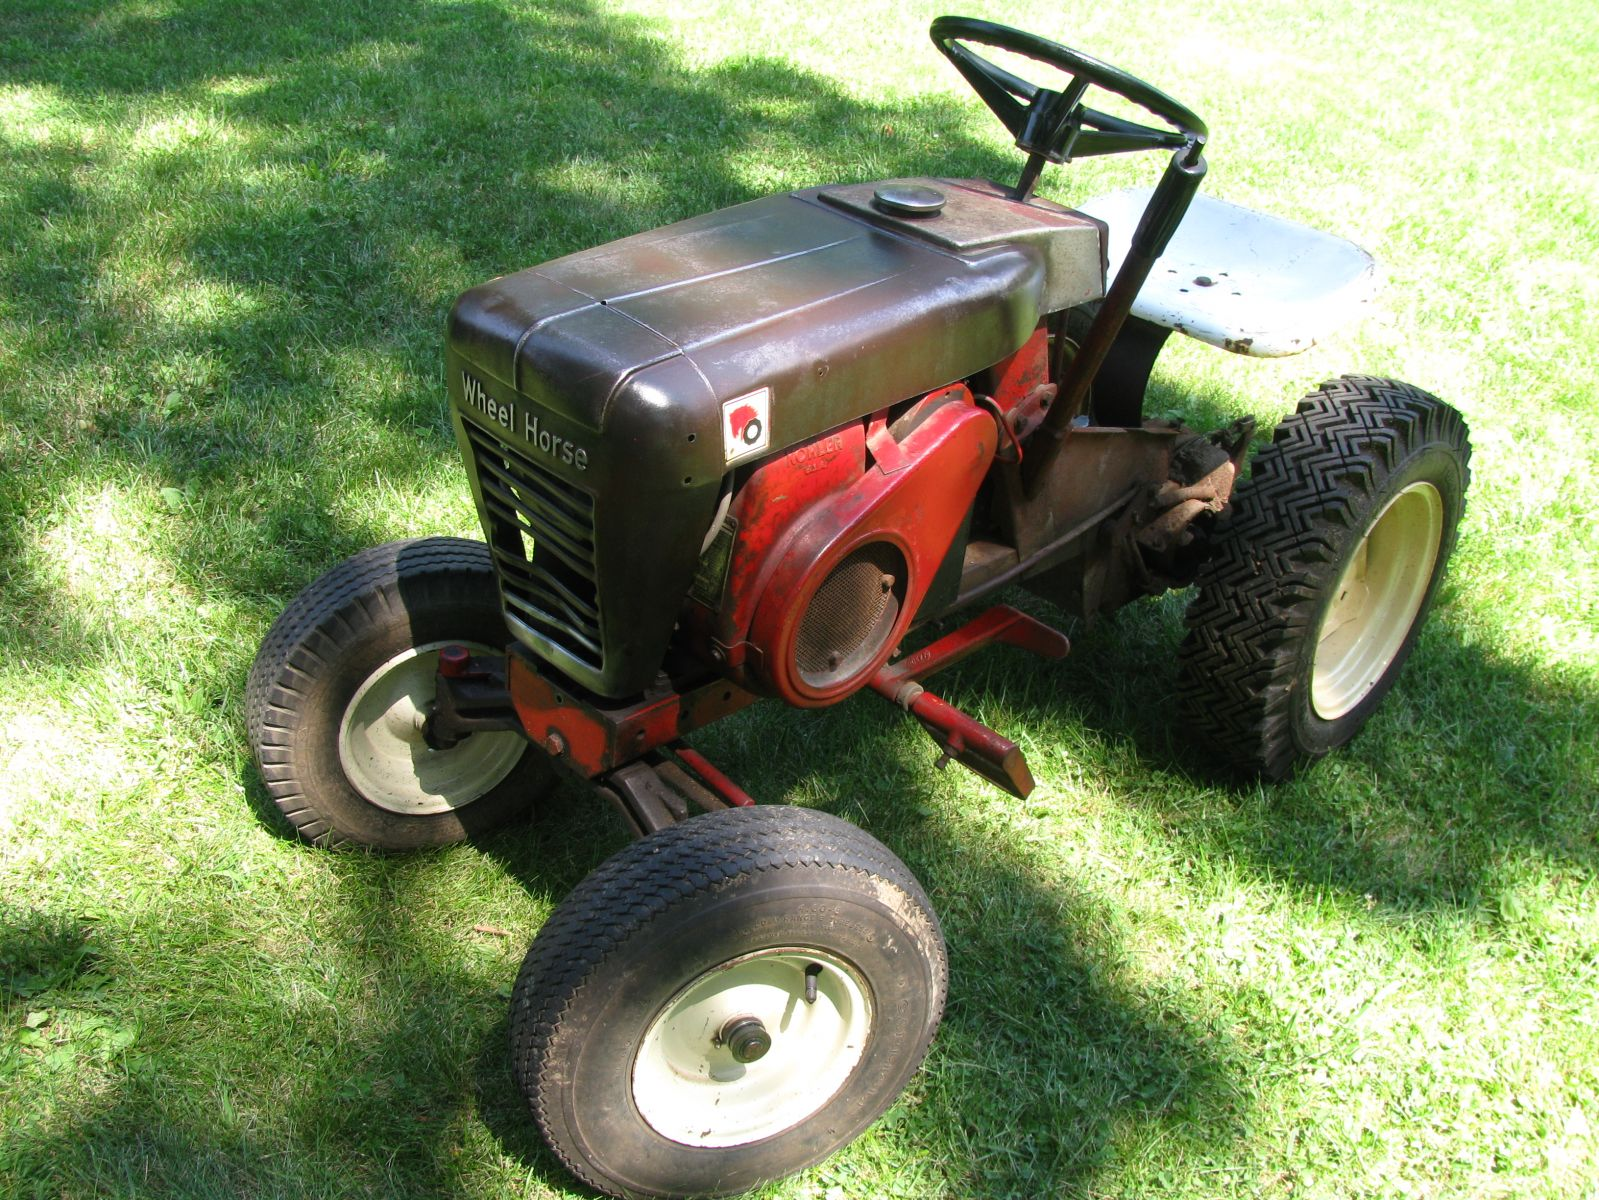 1964 Wheel Horse Tractor : Rusted model redsquare wheel horse